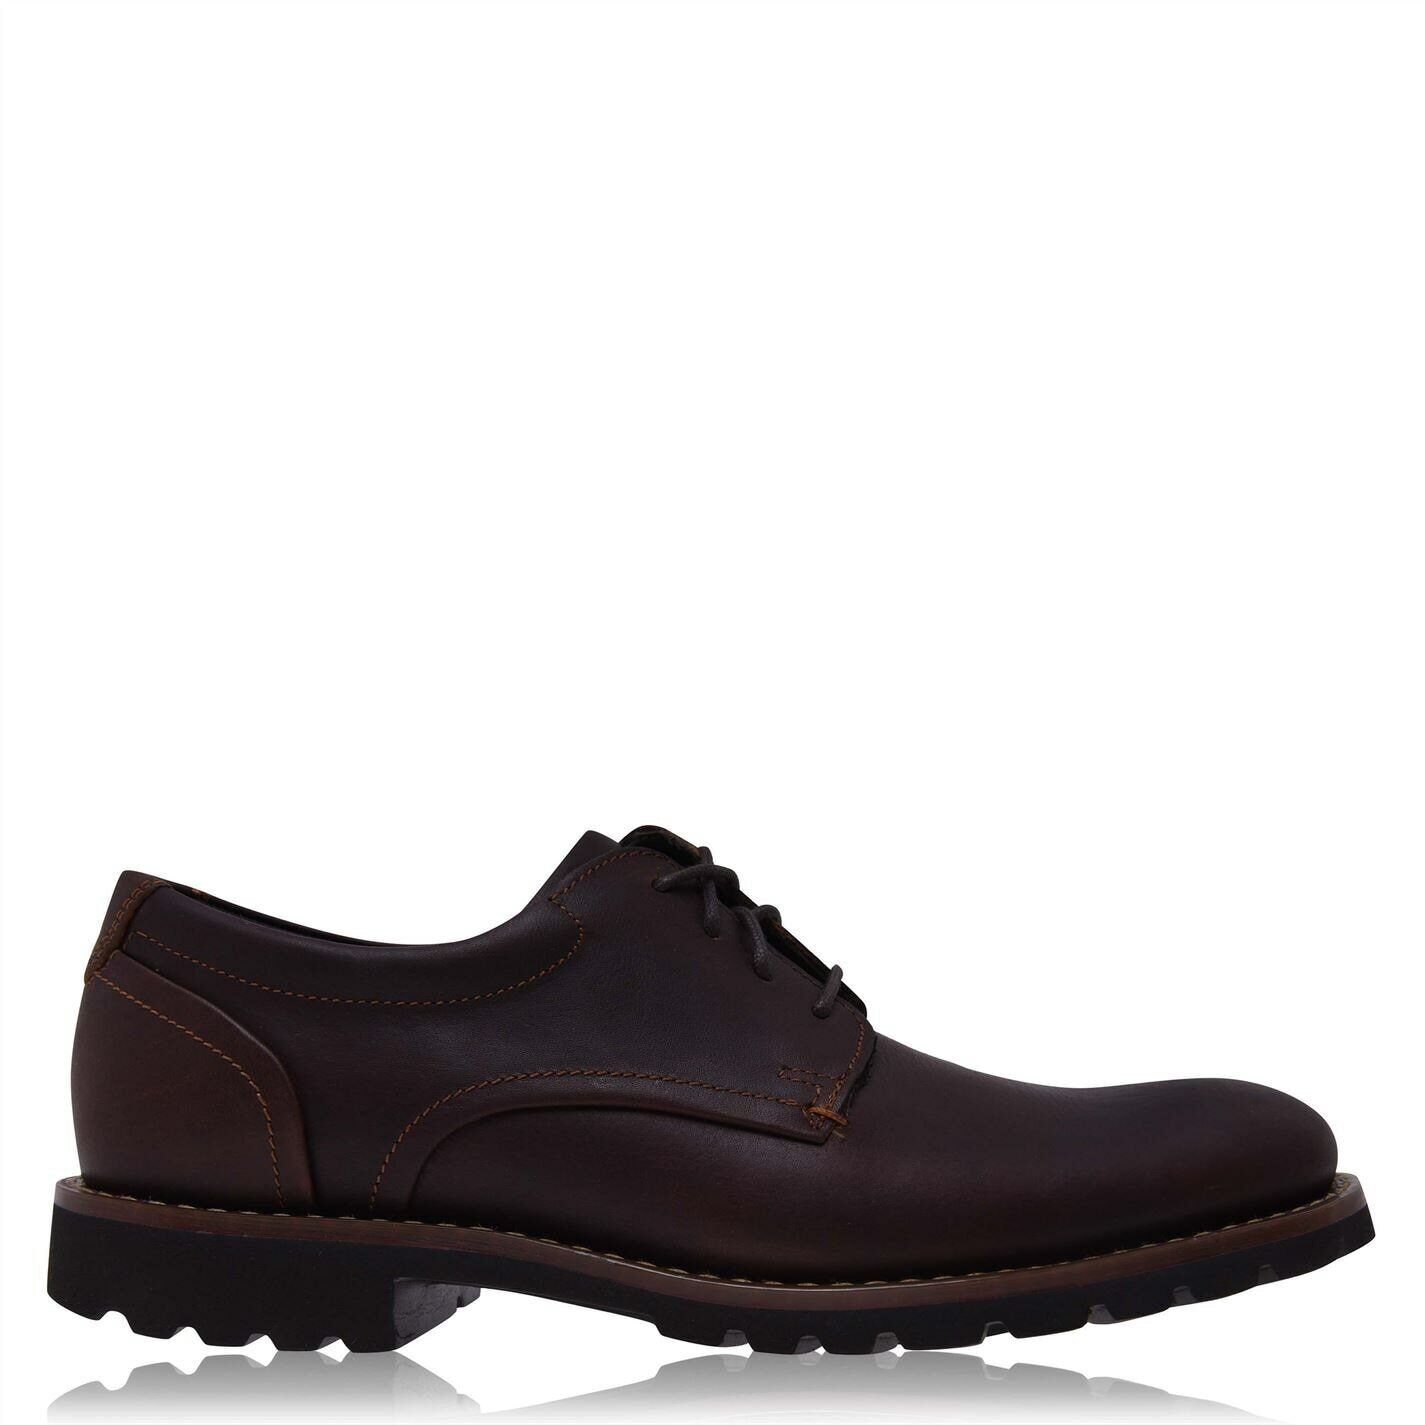 Rockport Colben Brogues Mens Gents Elegant Occasion Shoes Laces Fastened Padded